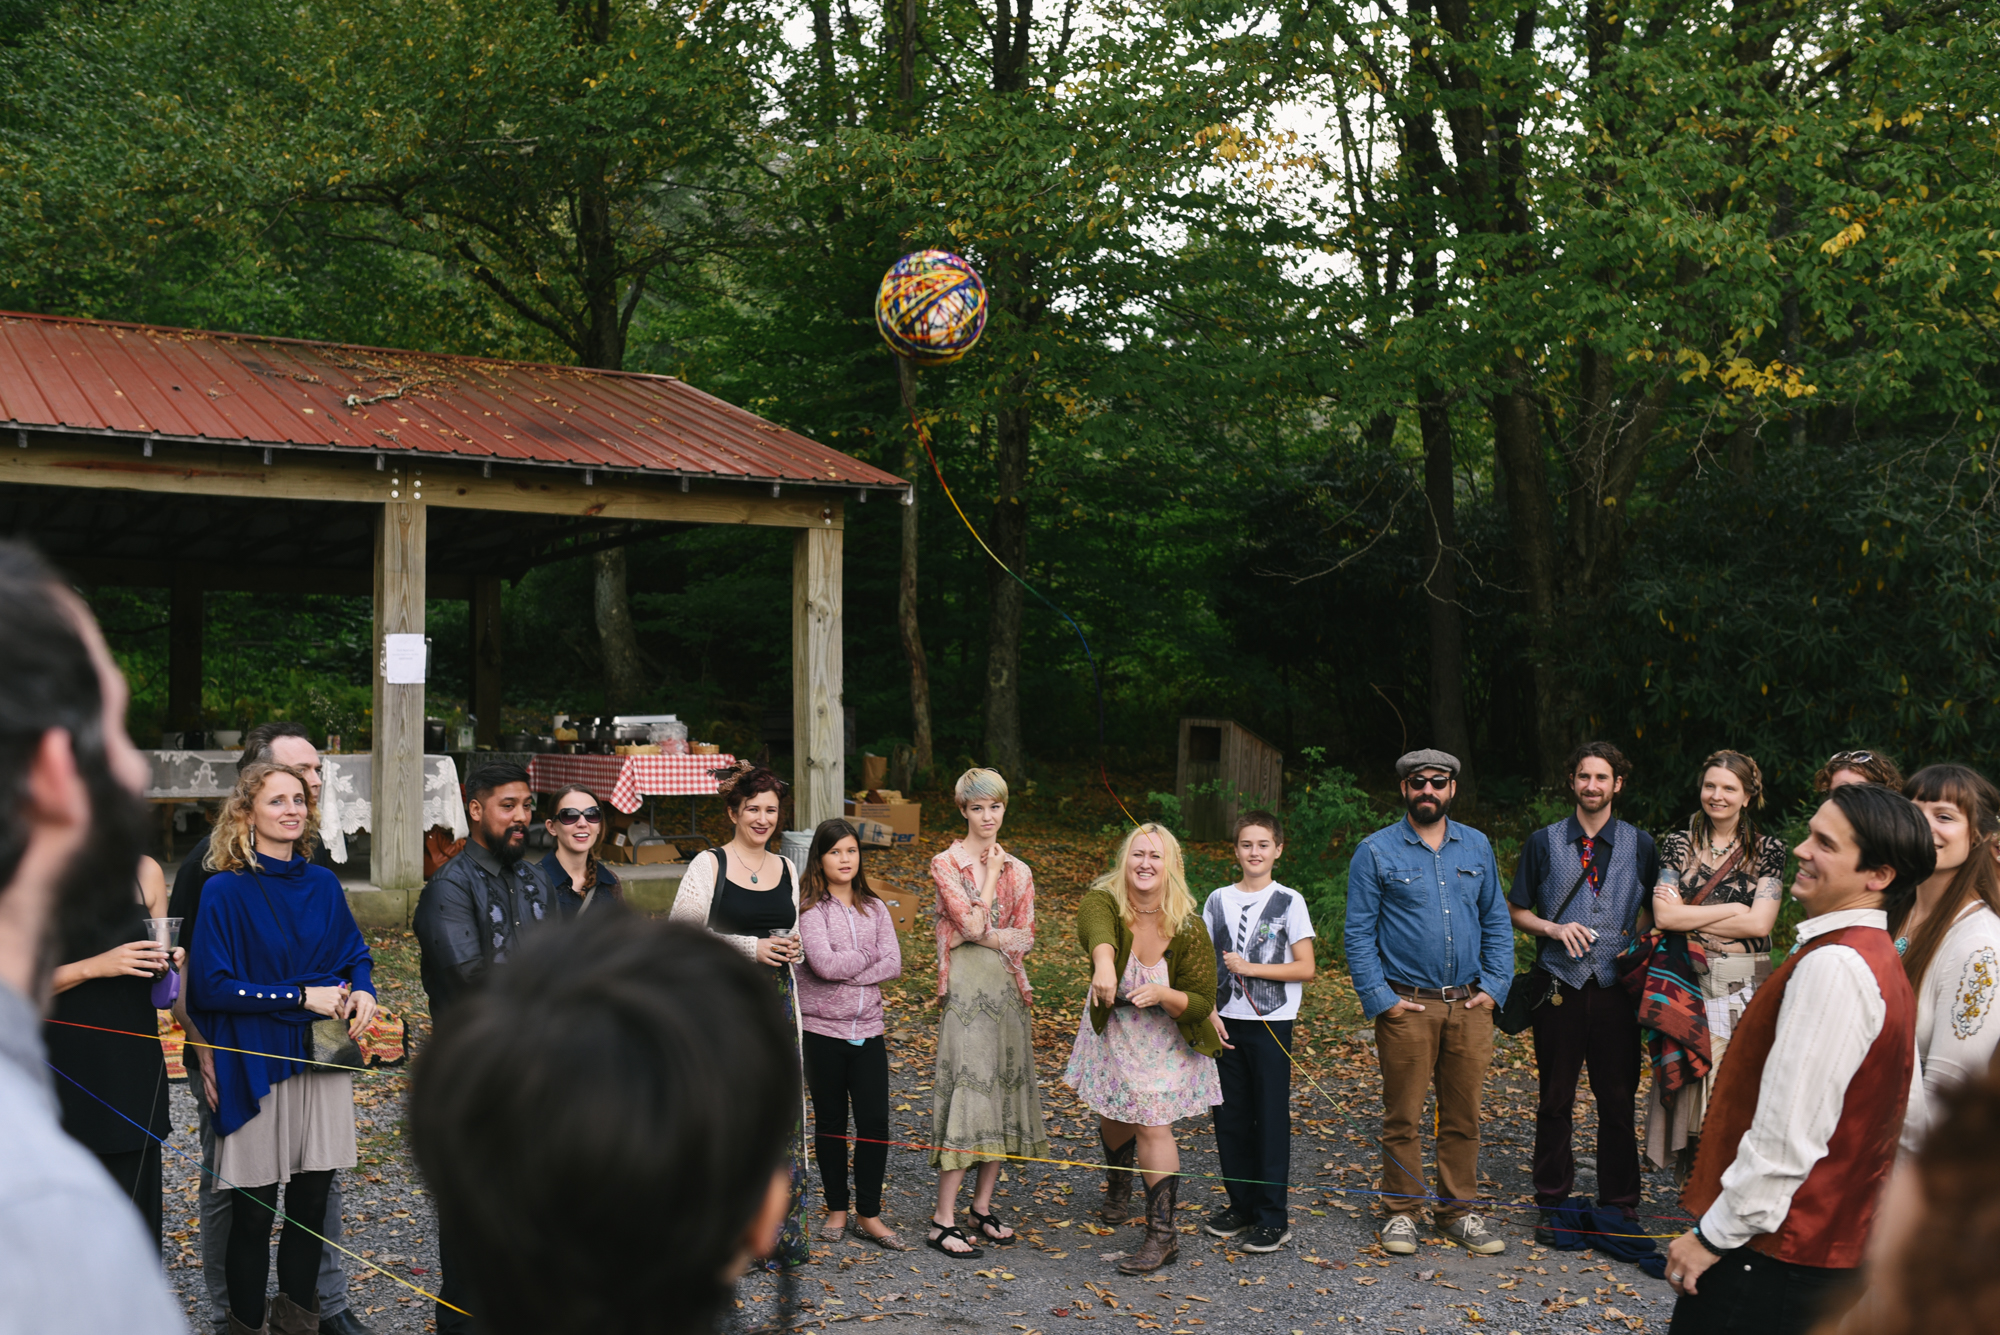 Mountain Wedding, Outdoors, Rustic, West Virginia, Maryland Wedding Photographer, DIY, Casual, yarn weaving ceremony with guests